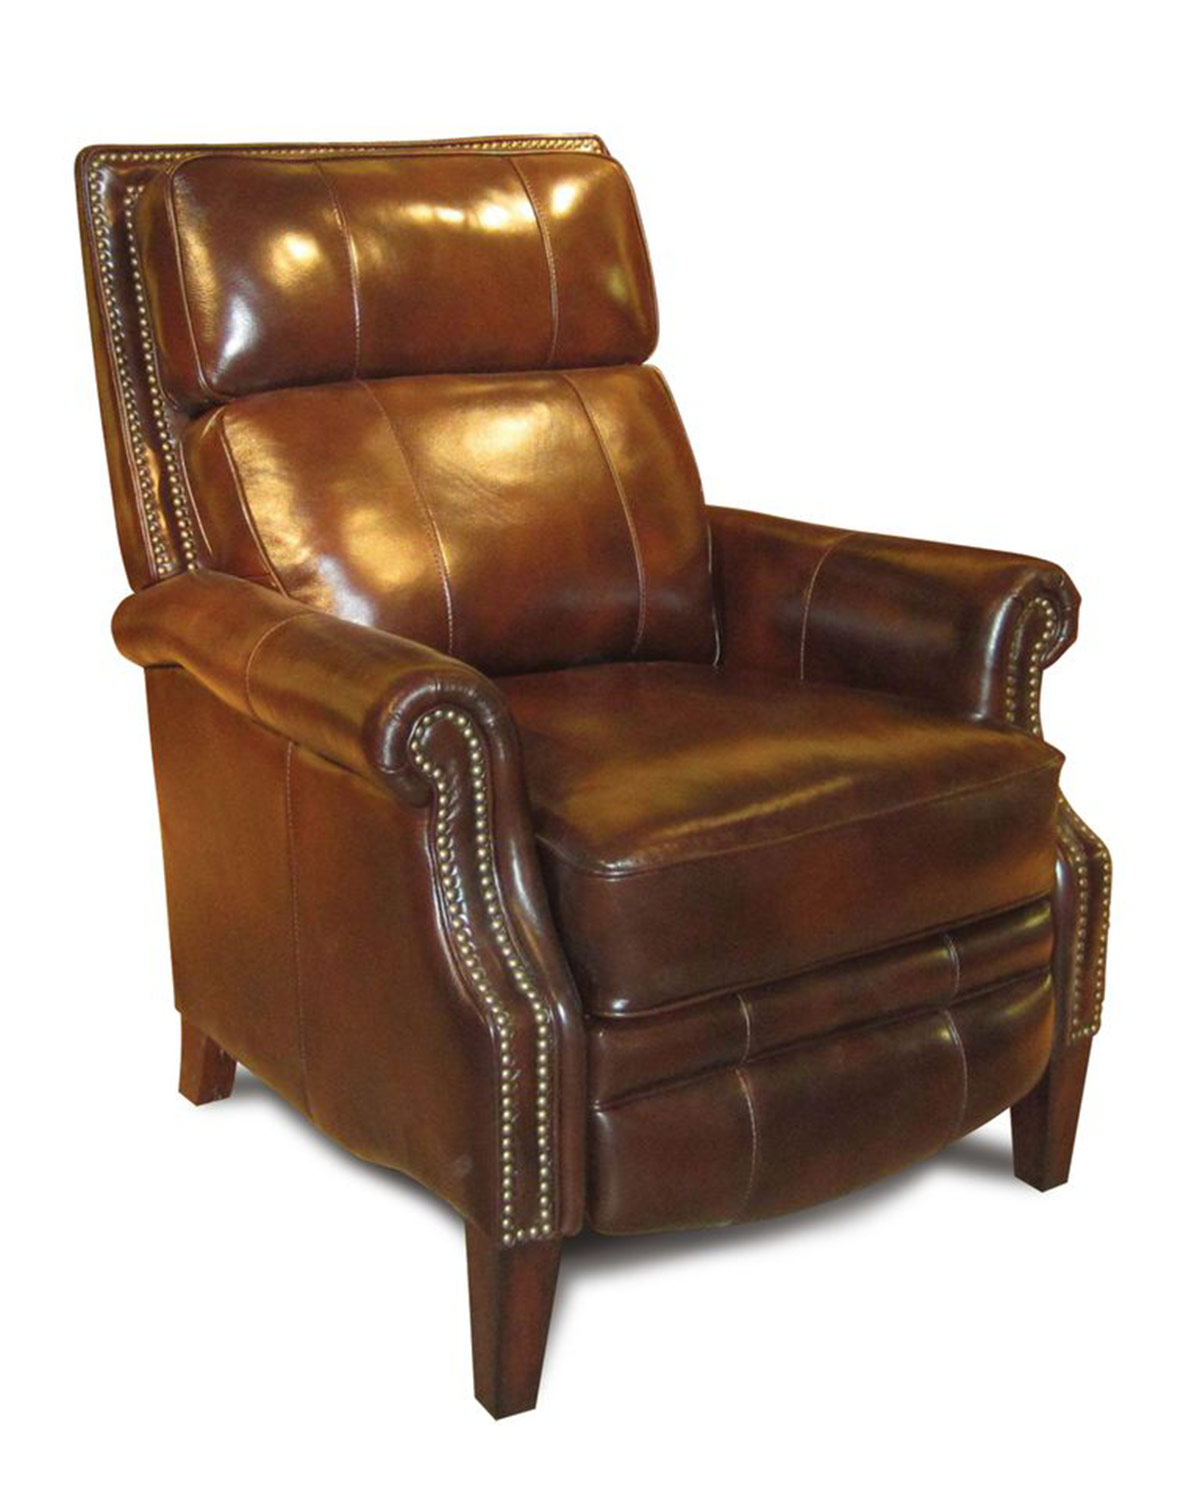 Barcalounger oxford ll vintage reserve recliner chair remy for Barcalounger